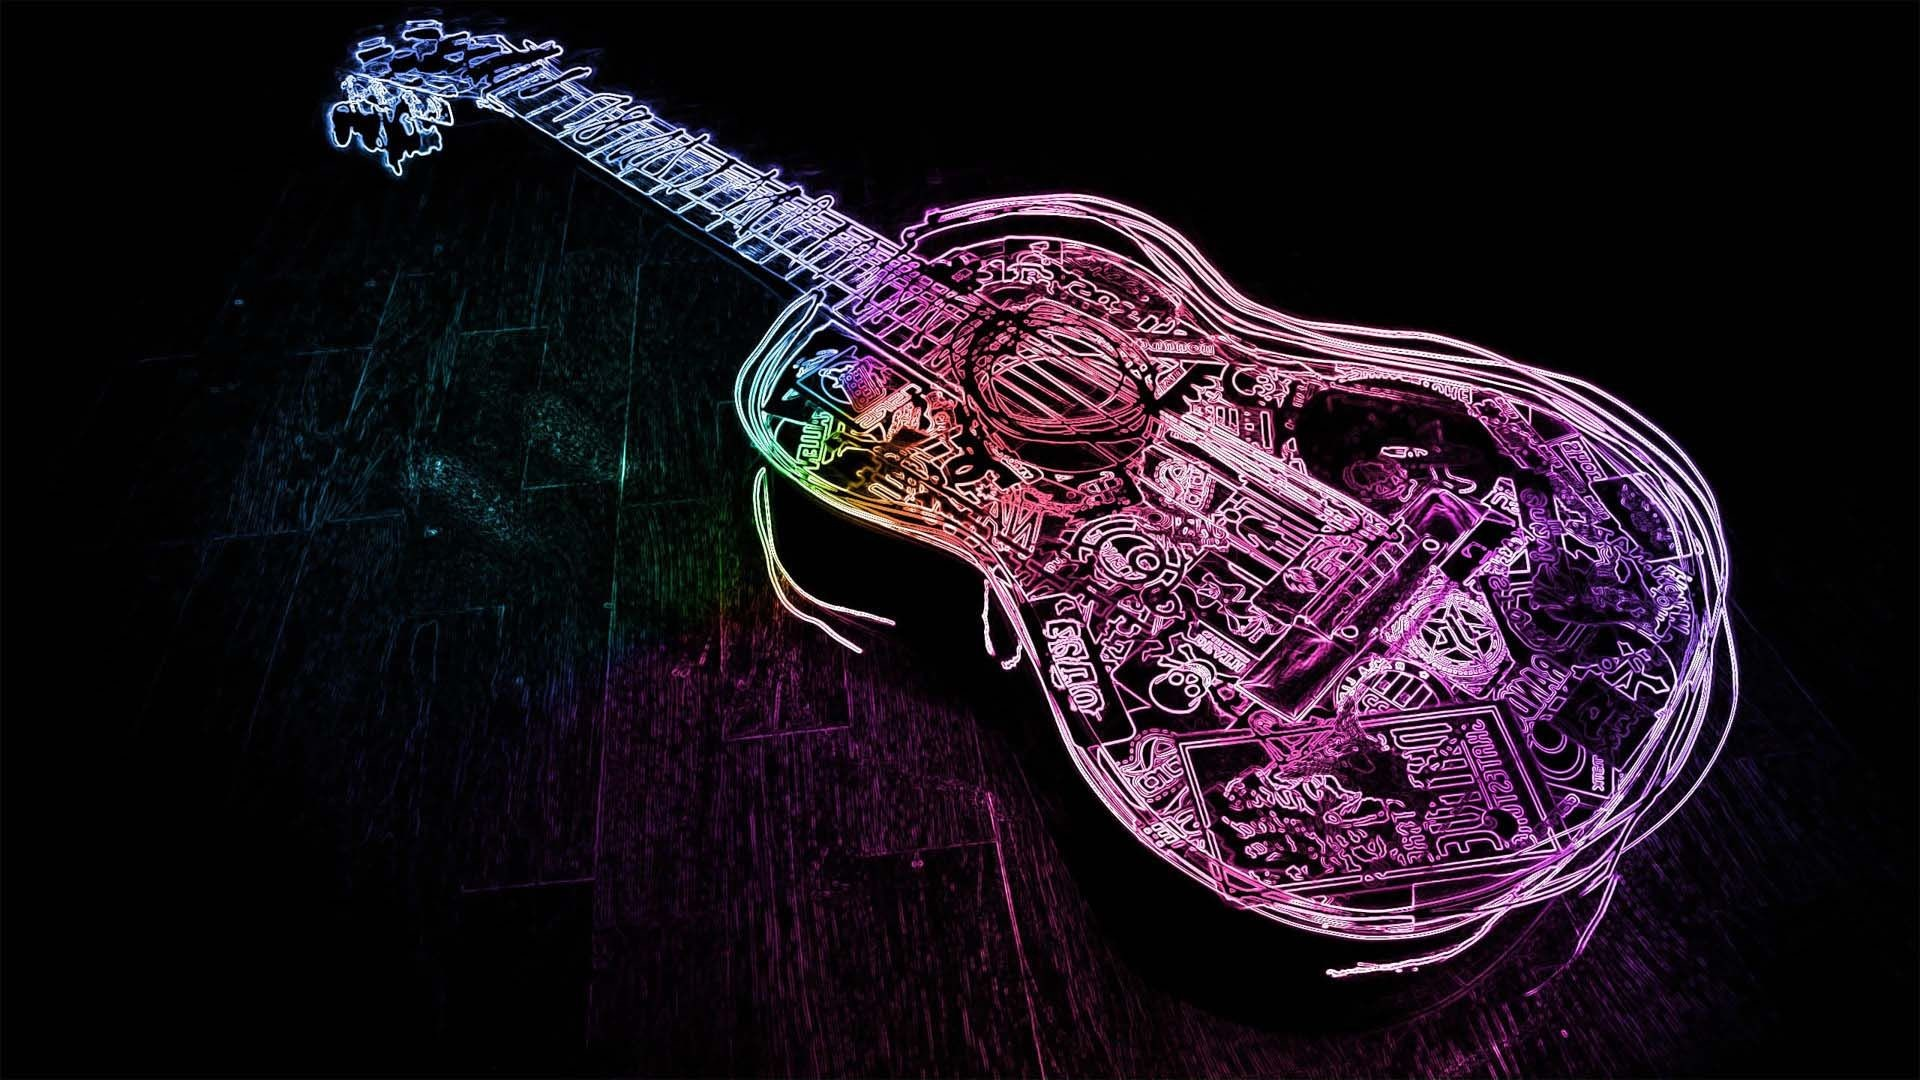 Res: 1920x1080, Glowing Neon Guitar Outline | HD Dance and Music Wallpaper Free Download ...